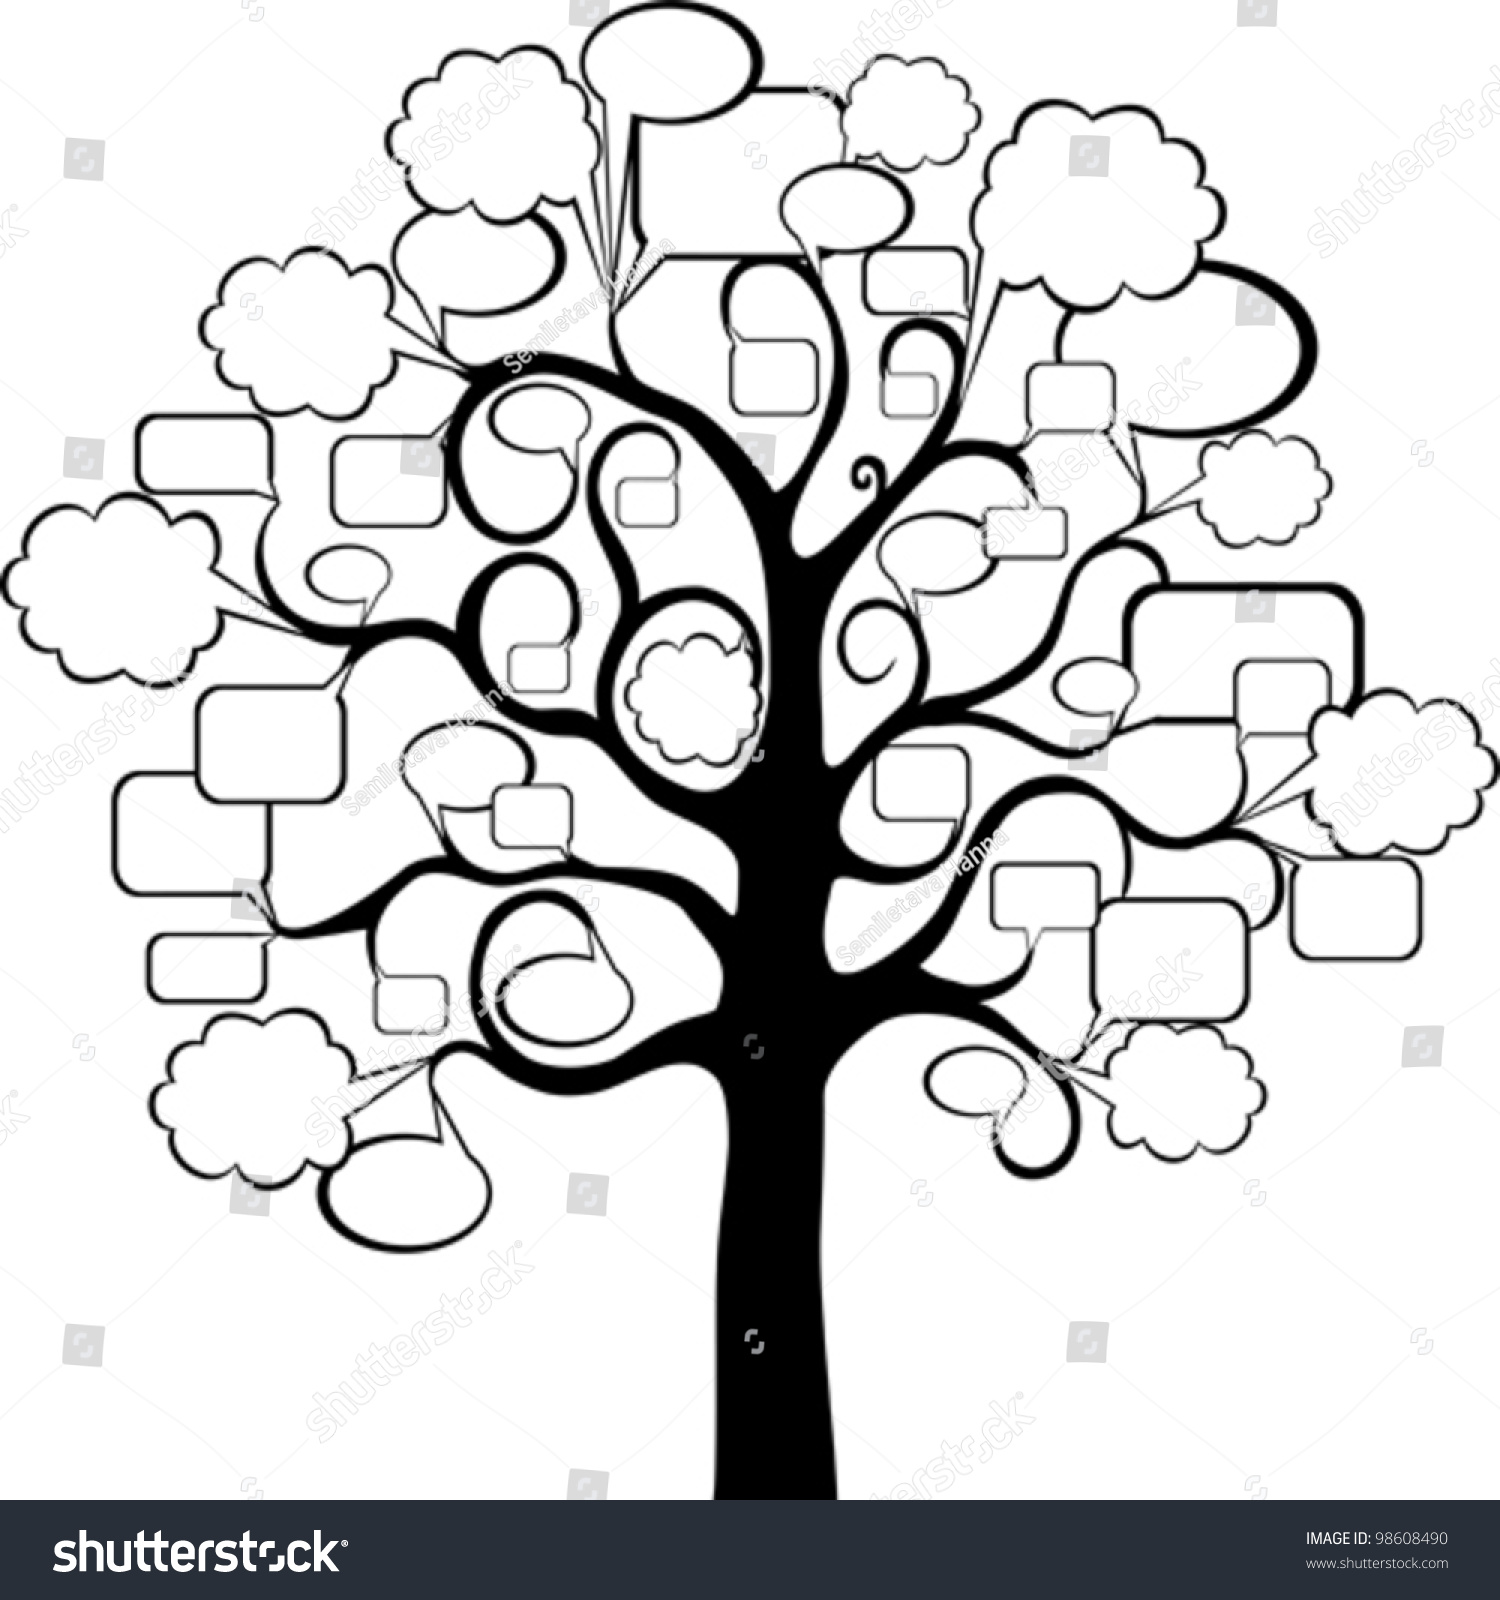 tree speech bubble isolated on white stock vector 98608490 shutterstock. Black Bedroom Furniture Sets. Home Design Ideas